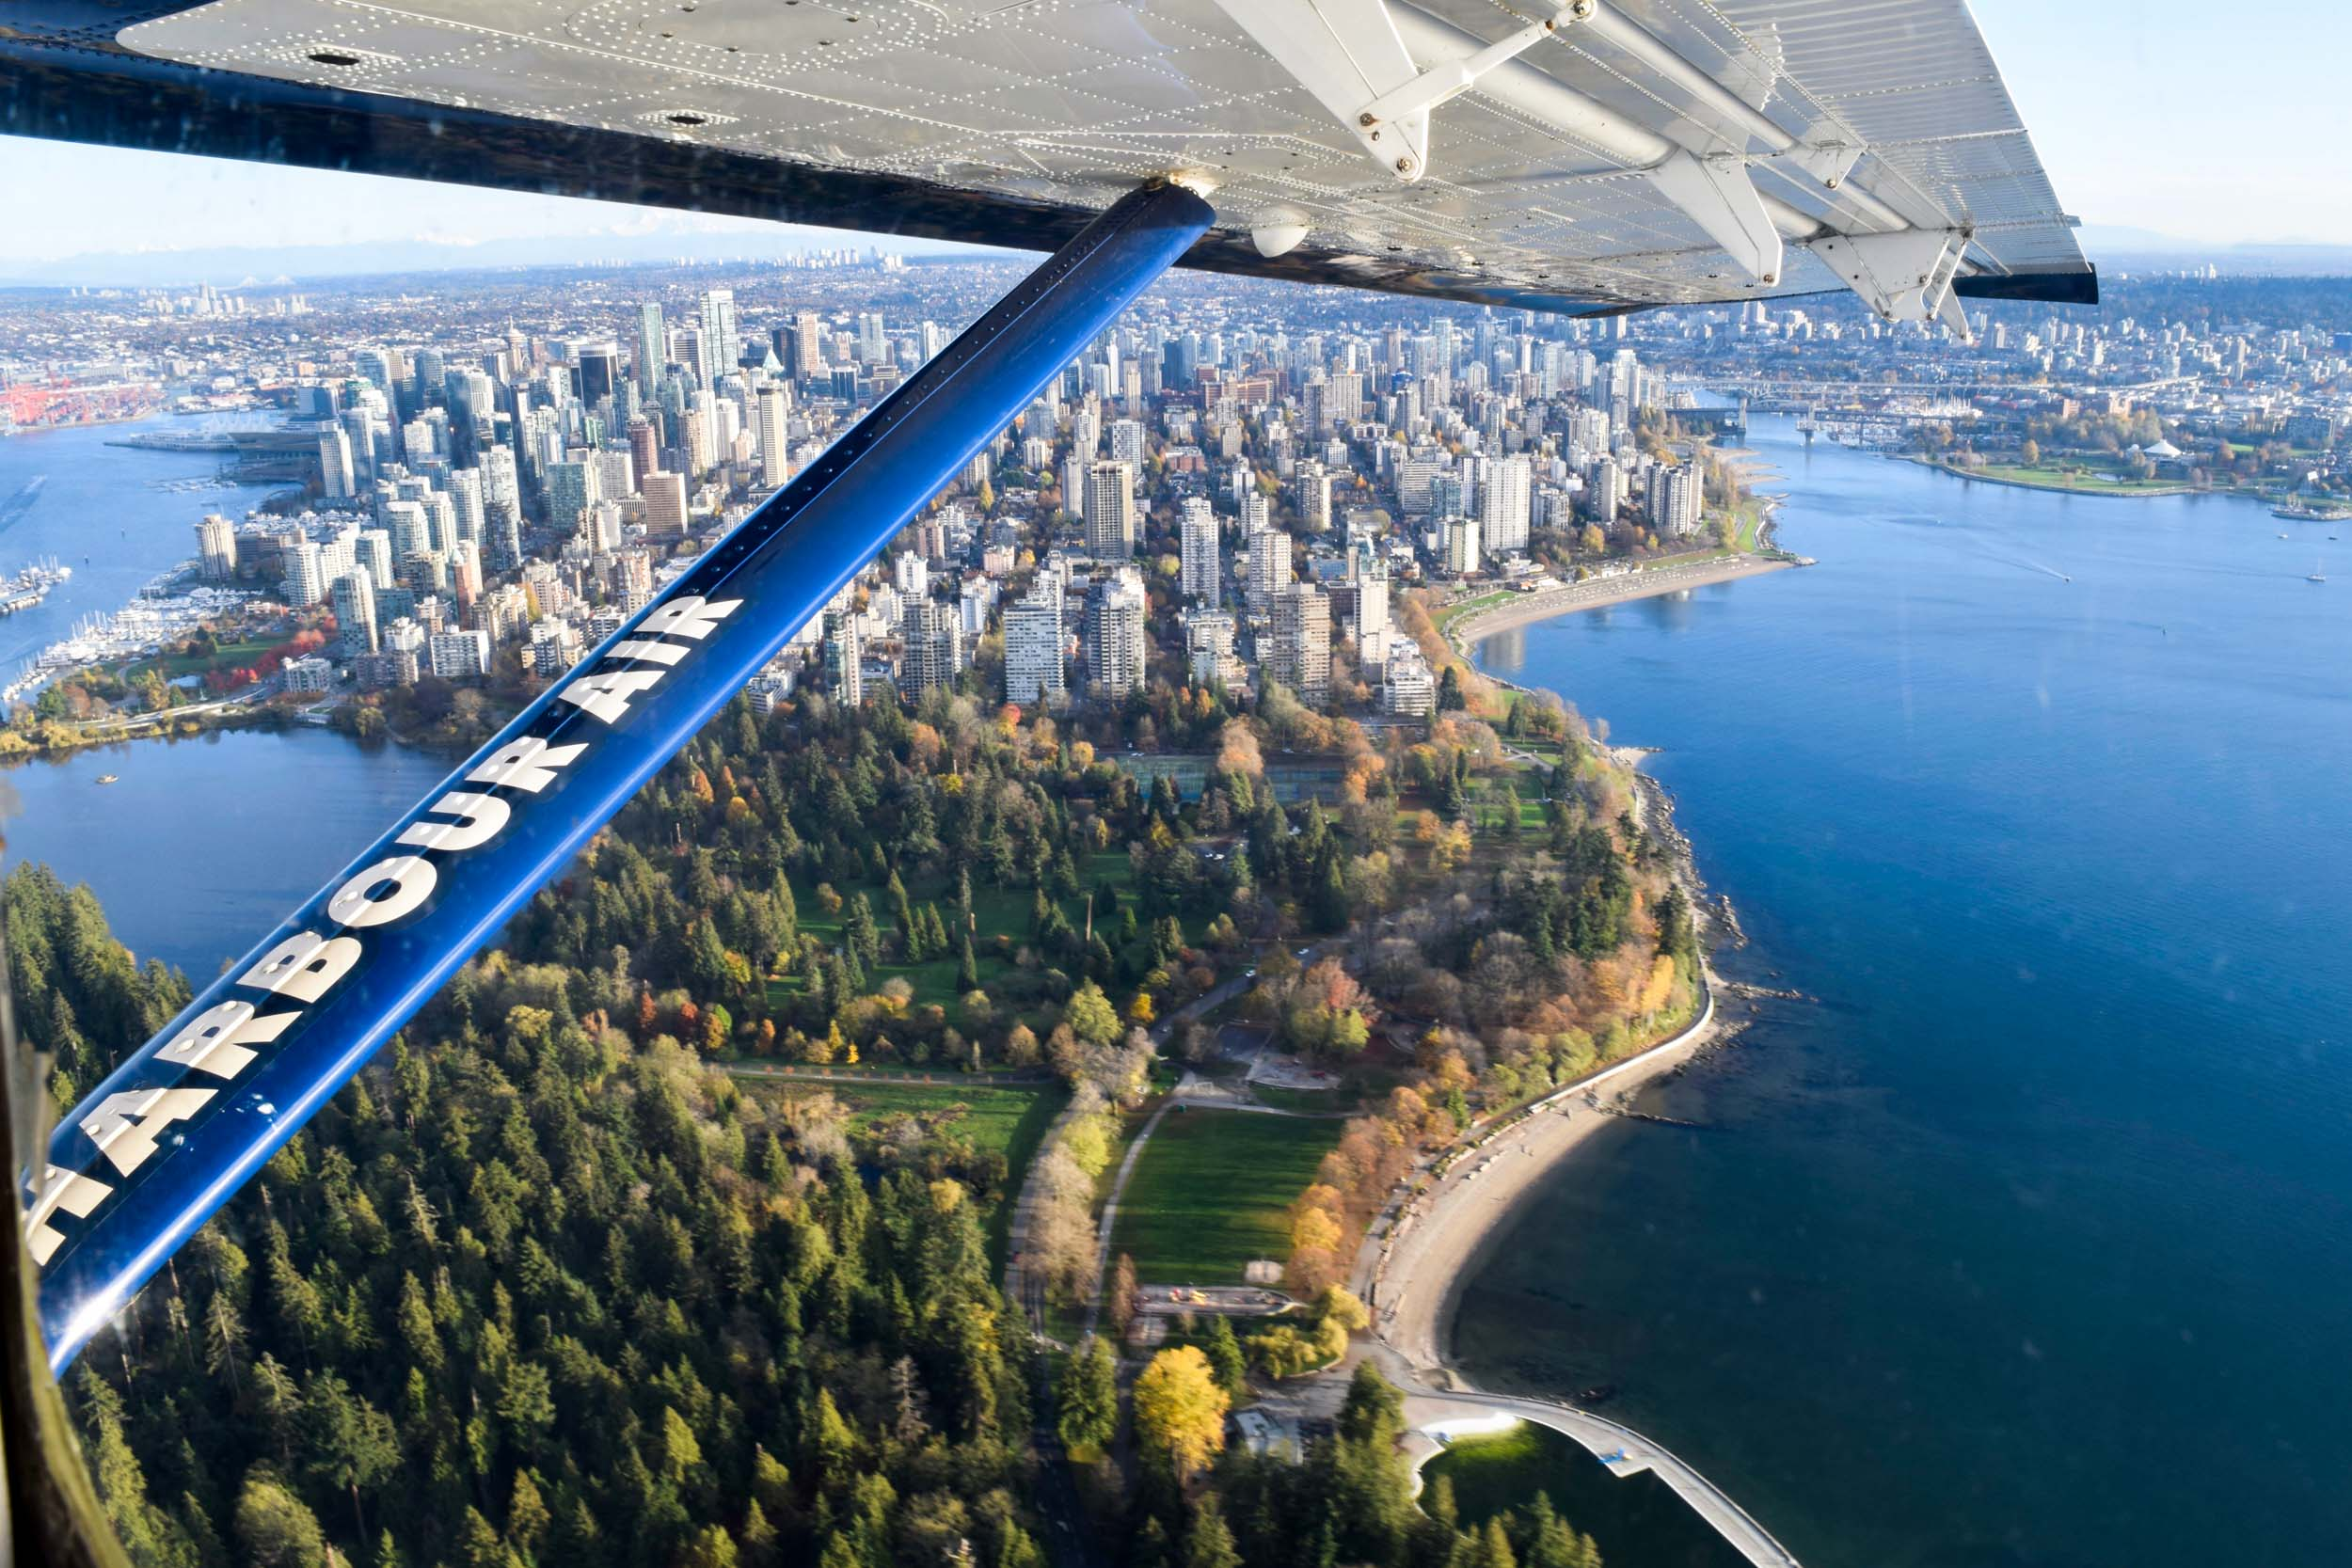 On board a Harbour Air seaplane, flying over Vancouver's Stanley Park and downtown.